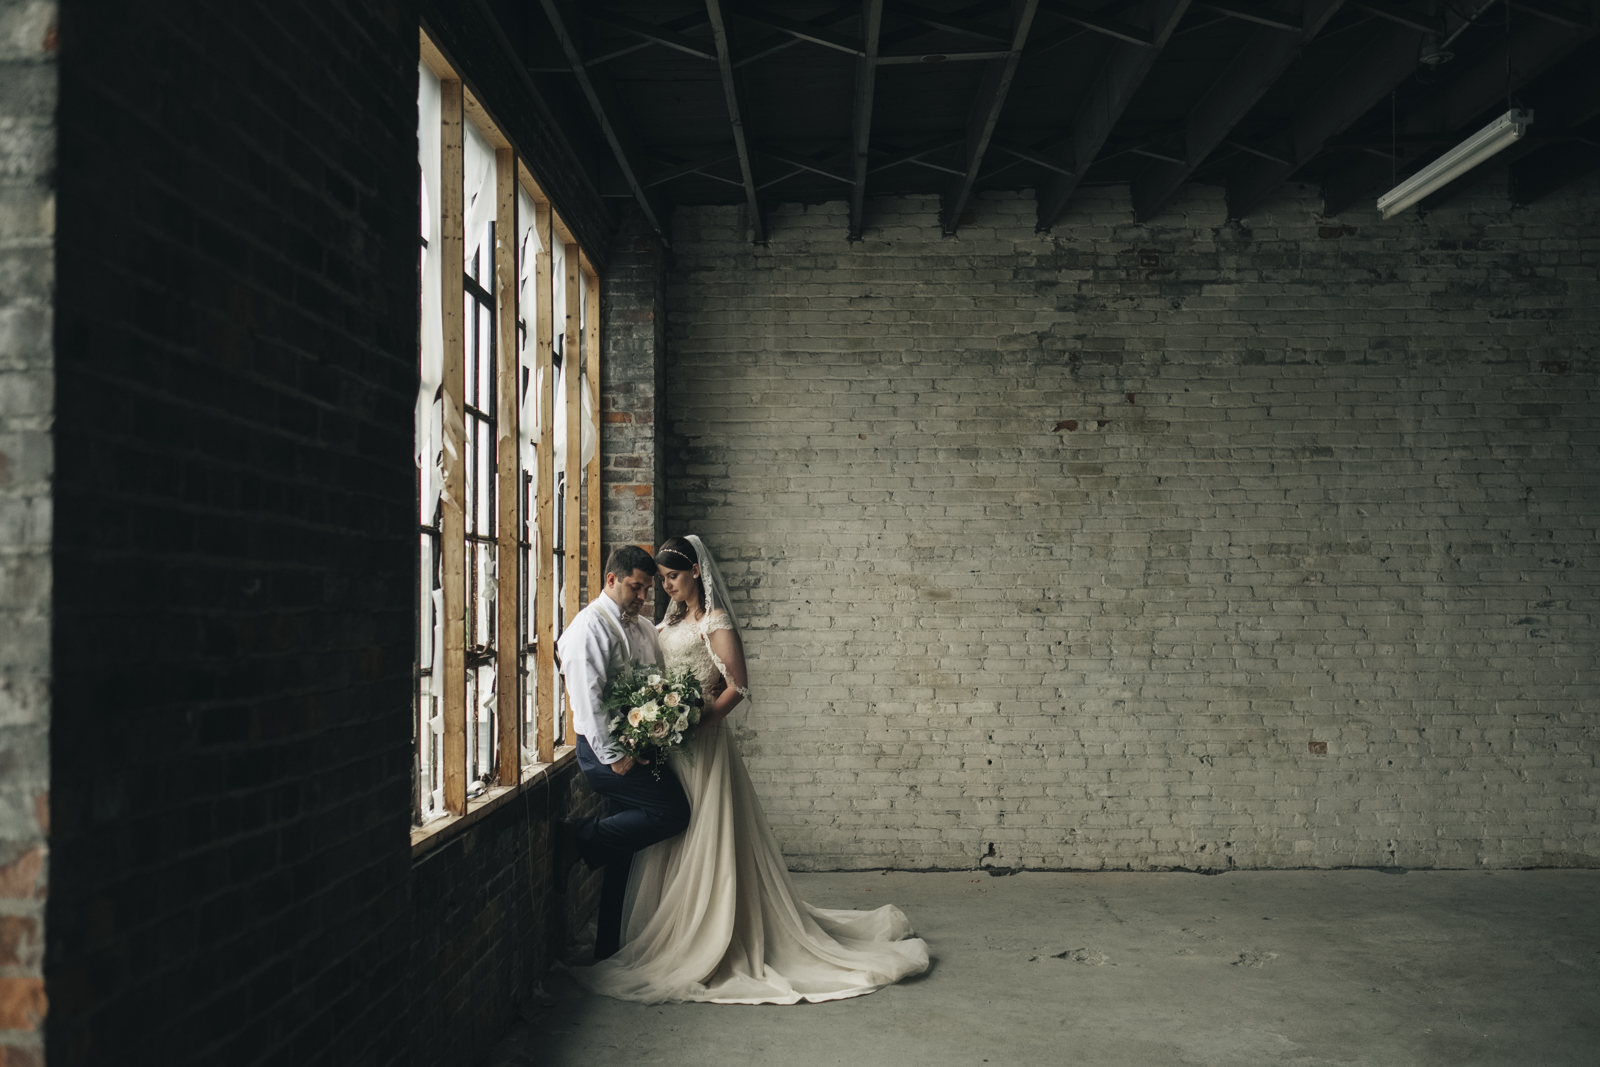 Bride and groom wedding photography in downtown Toledo Warehouse.